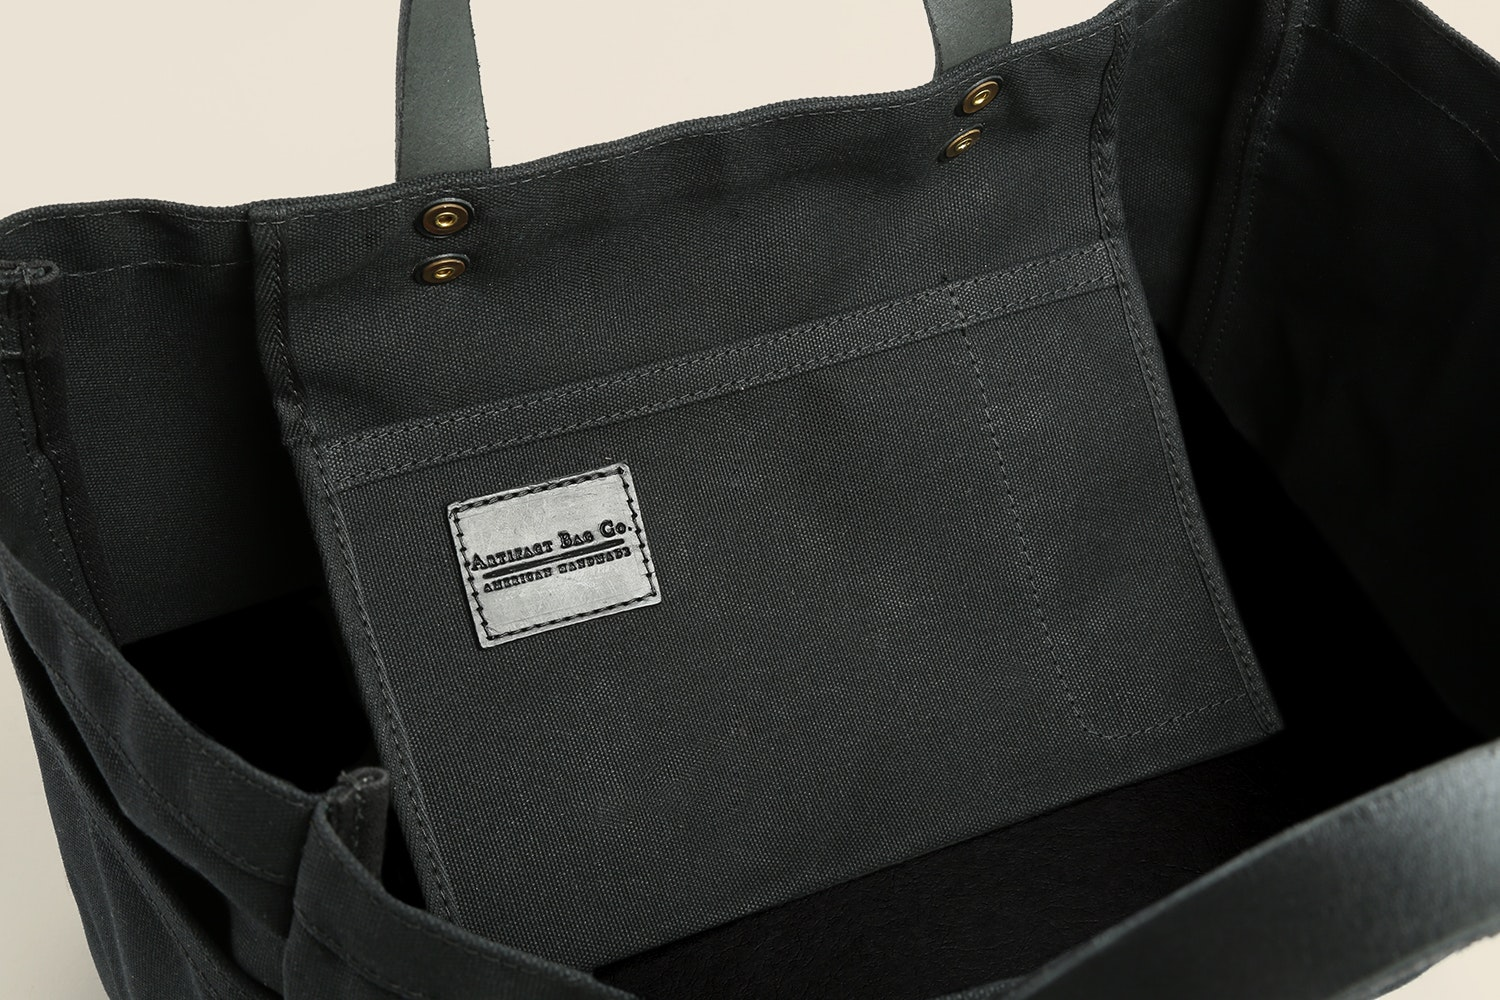 Artifact Bag Co. Tool & Garden Tote